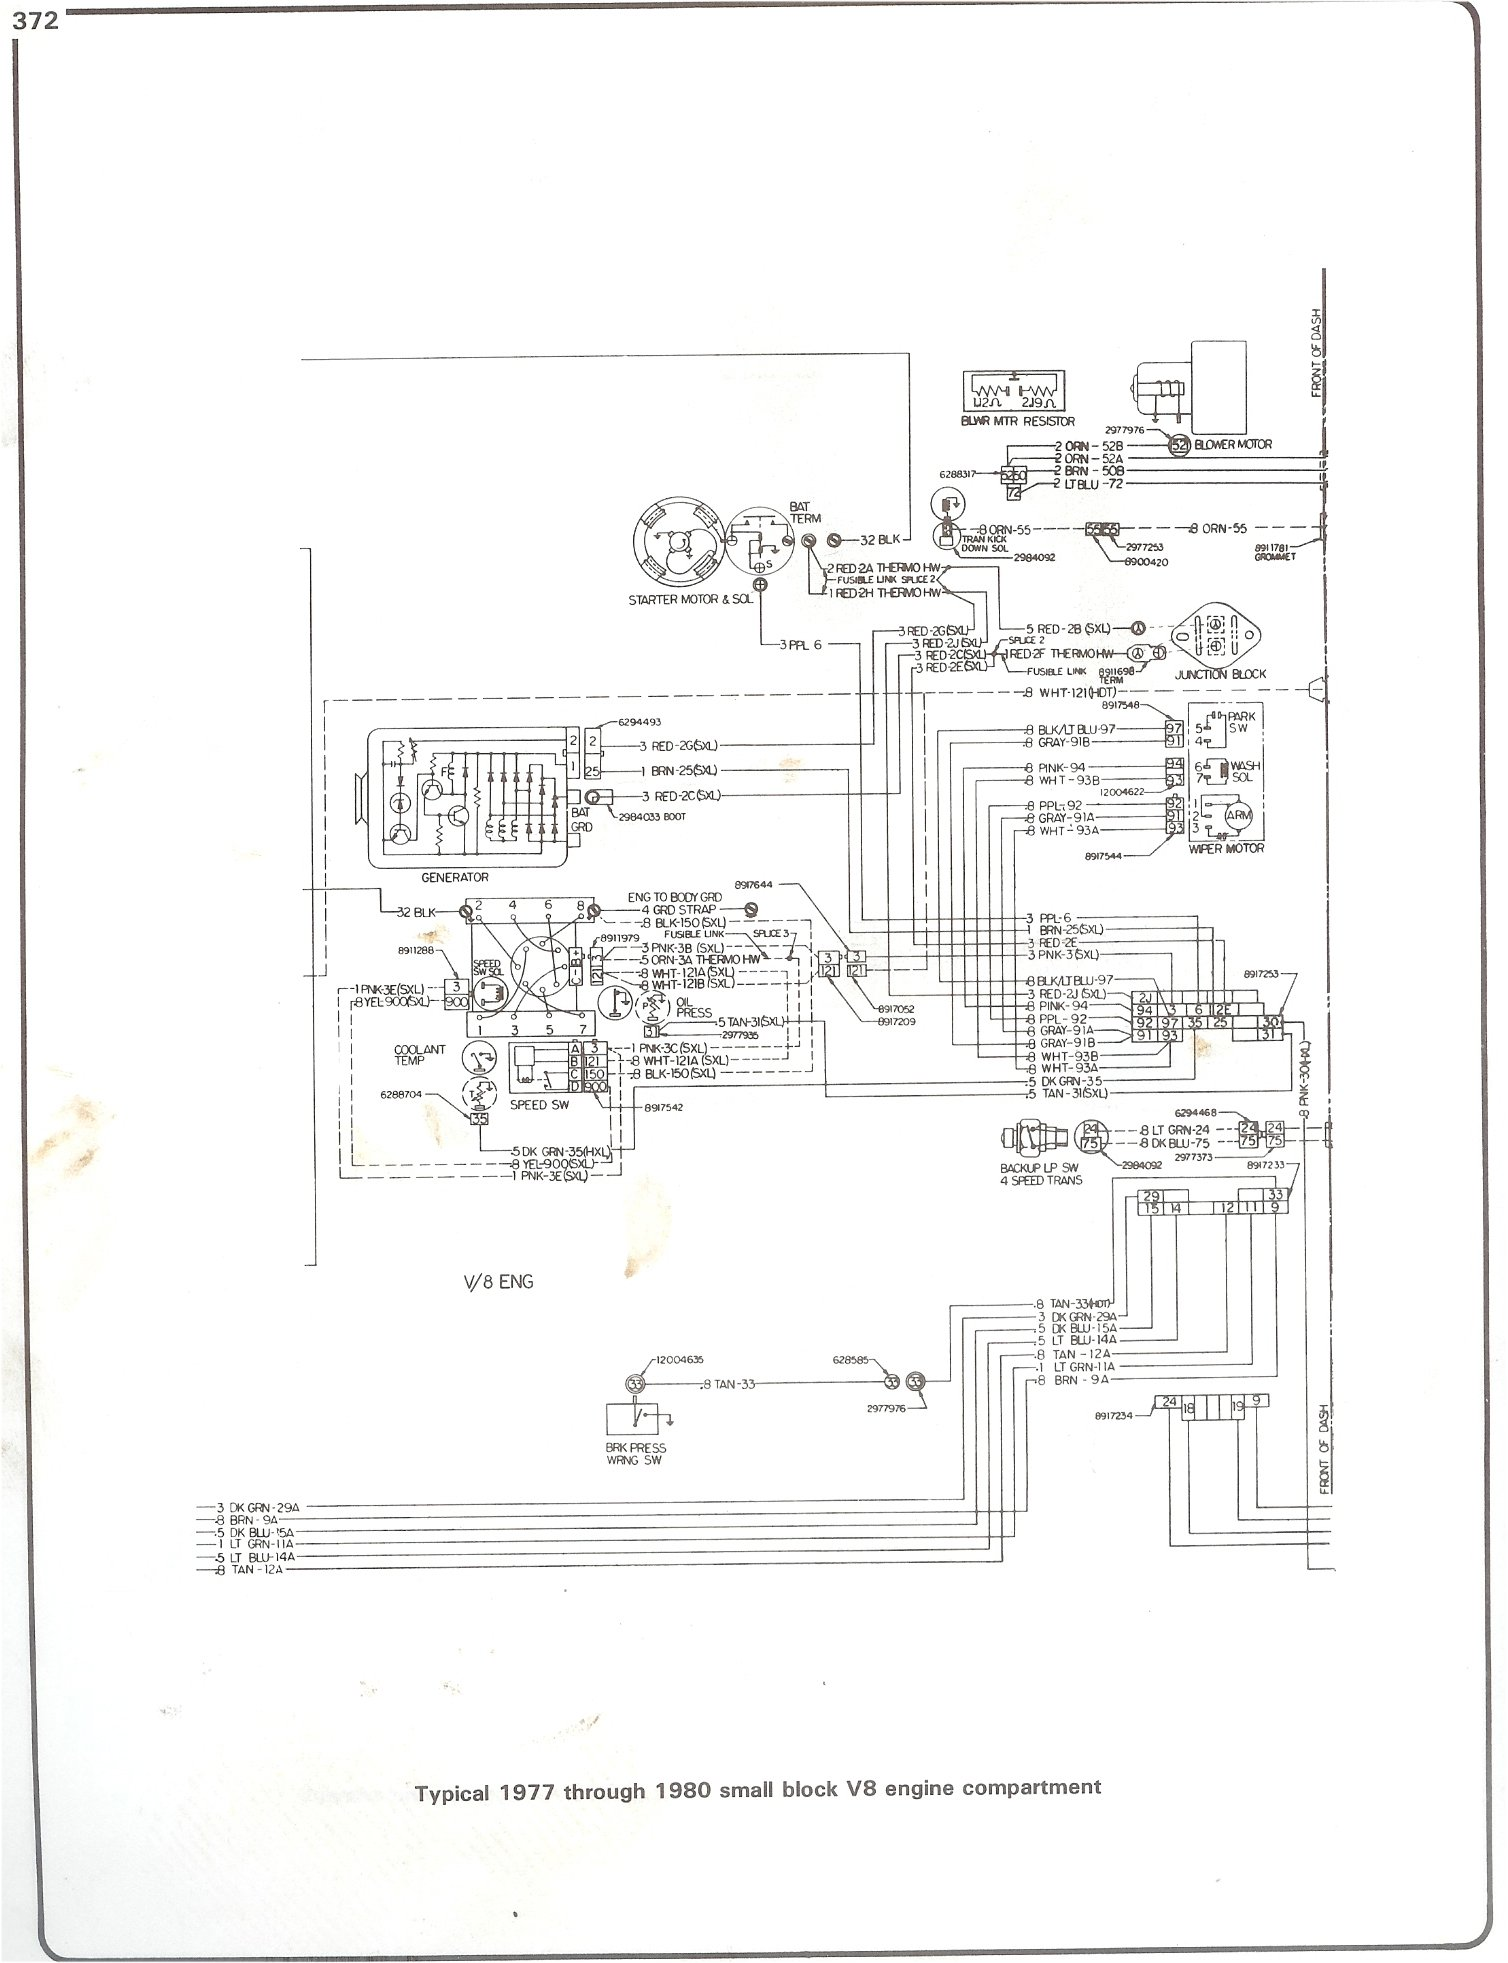 Plete 7387 Wiring Diagrams. 7780 Sbc Engine Wiring. Chevrolet. 1978 Chevy Scottsdale Wiring Diagram At Scoala.co